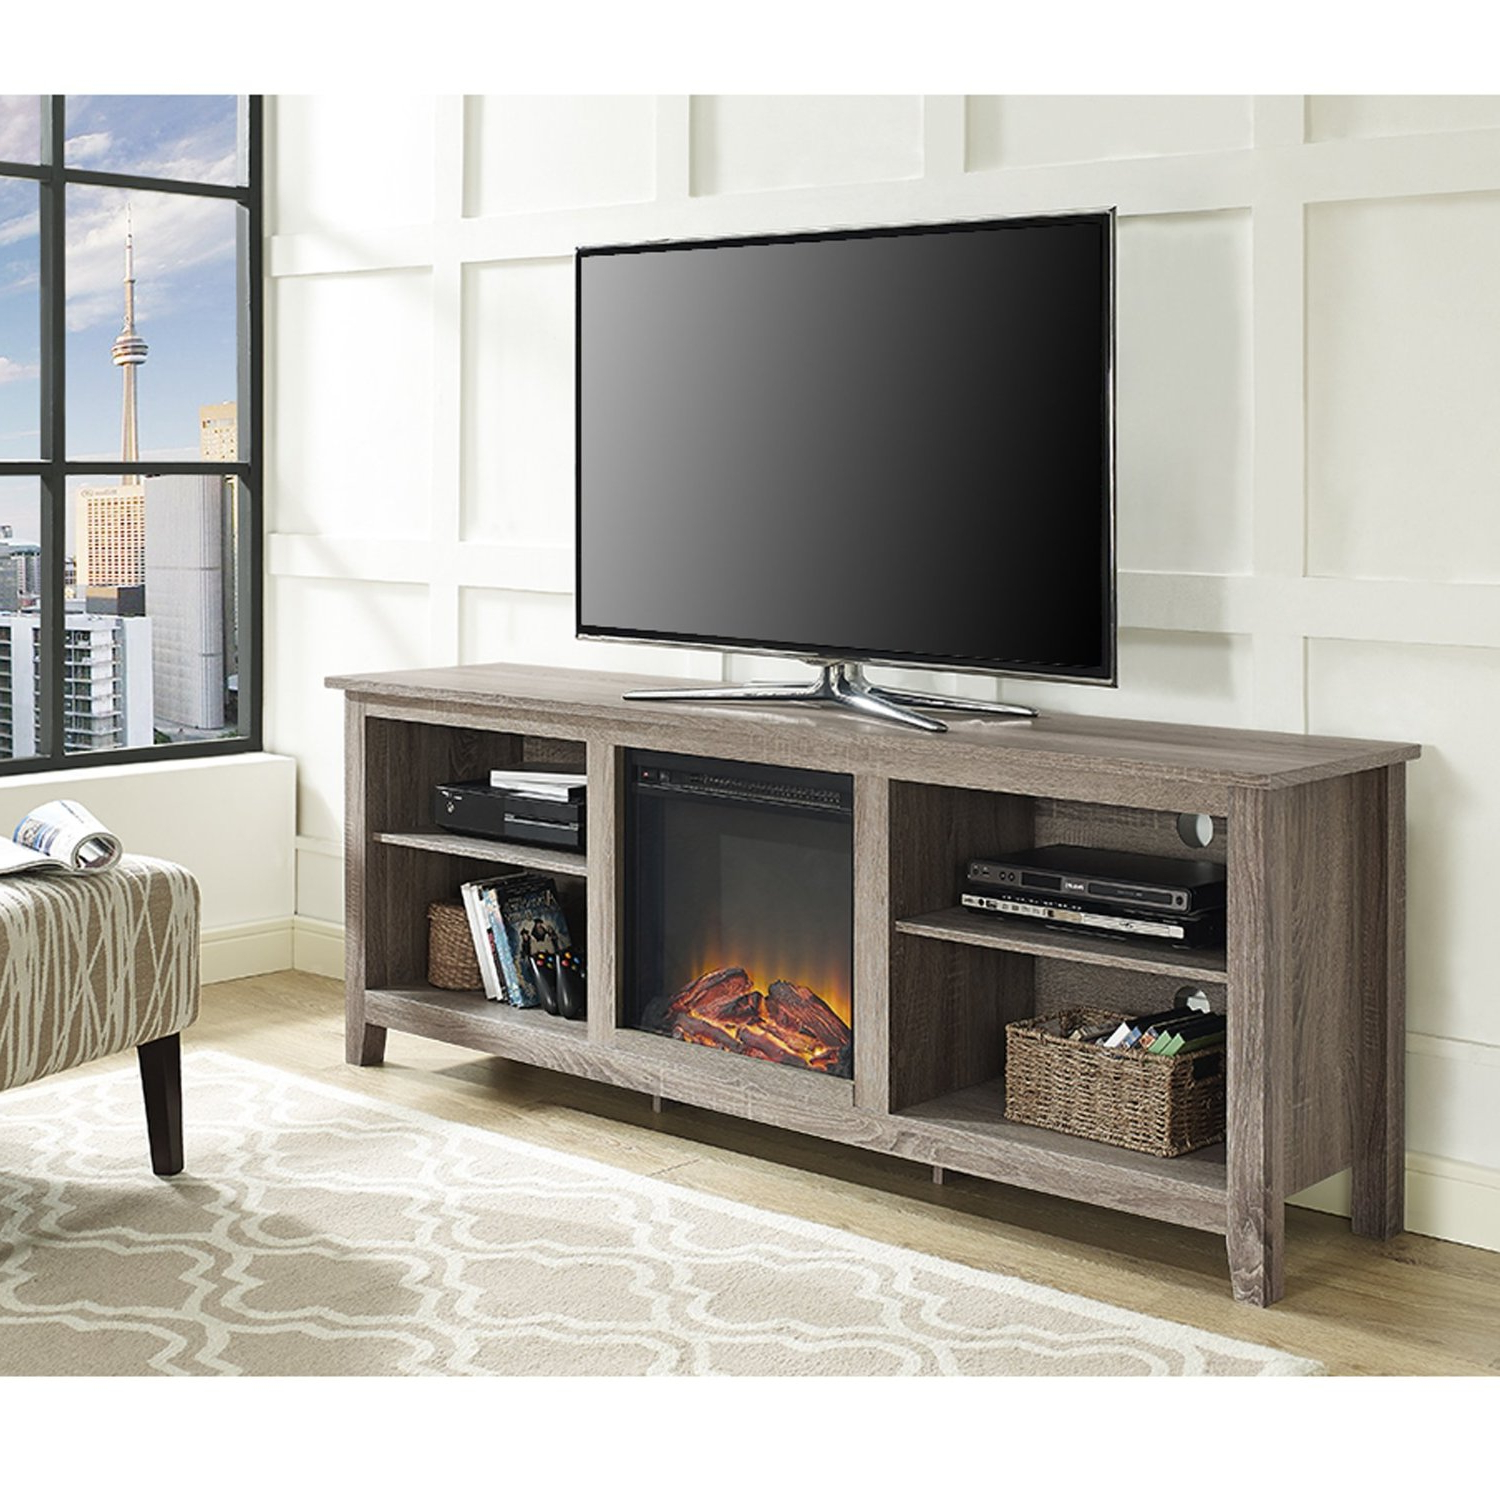 Furniture: Amazing Tv Stand With Fireplace For Your Flat Screen Tv Pertaining To Widely Used Tv Stands For 70 Flat Screen (Gallery 15 of 20)